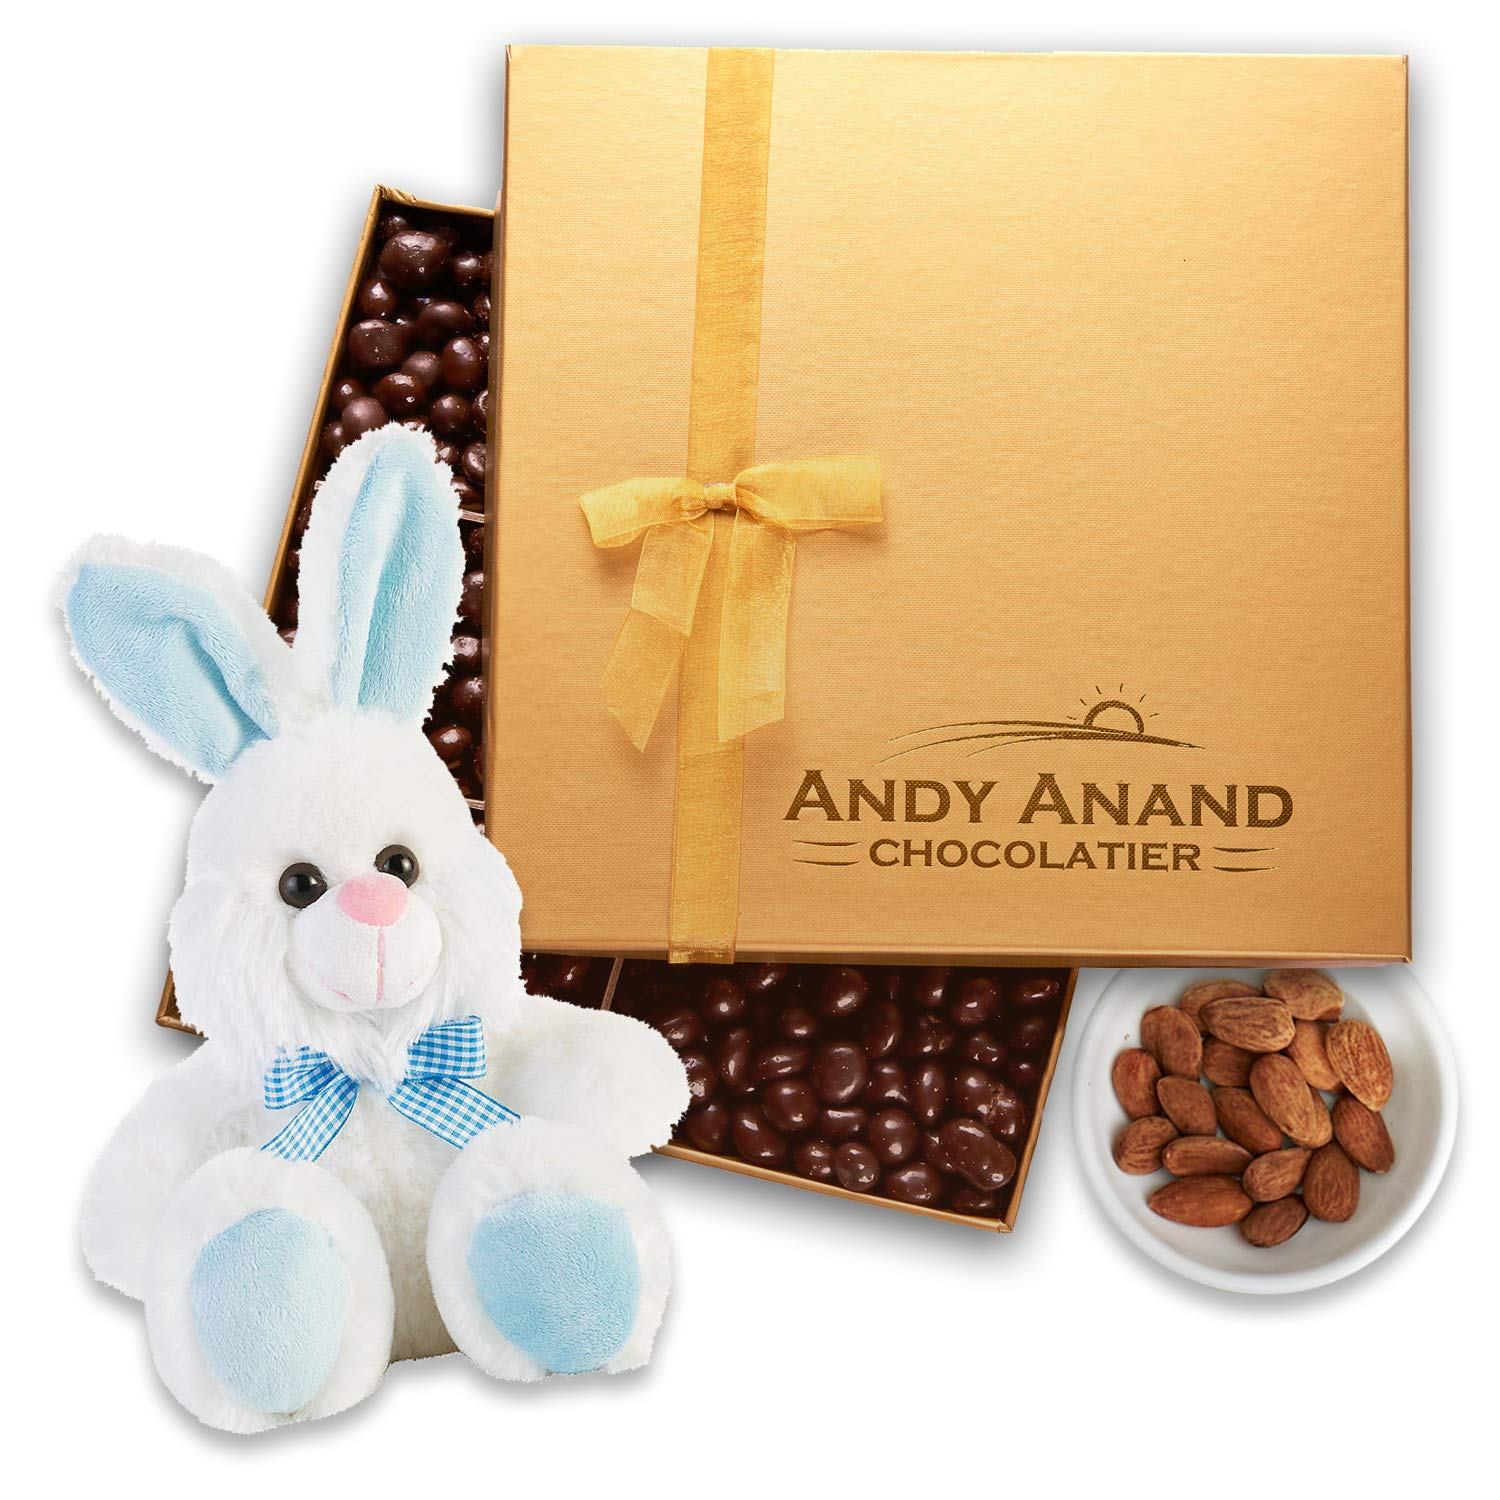 "Andy Anand's Chocolates - Easter Bunny Blue 13"" with Premium California Almonds covered with Gourmet Chocolate in Gift Basket, All-Natural and Certified Made from Natural Ingredients (1 lbs)"